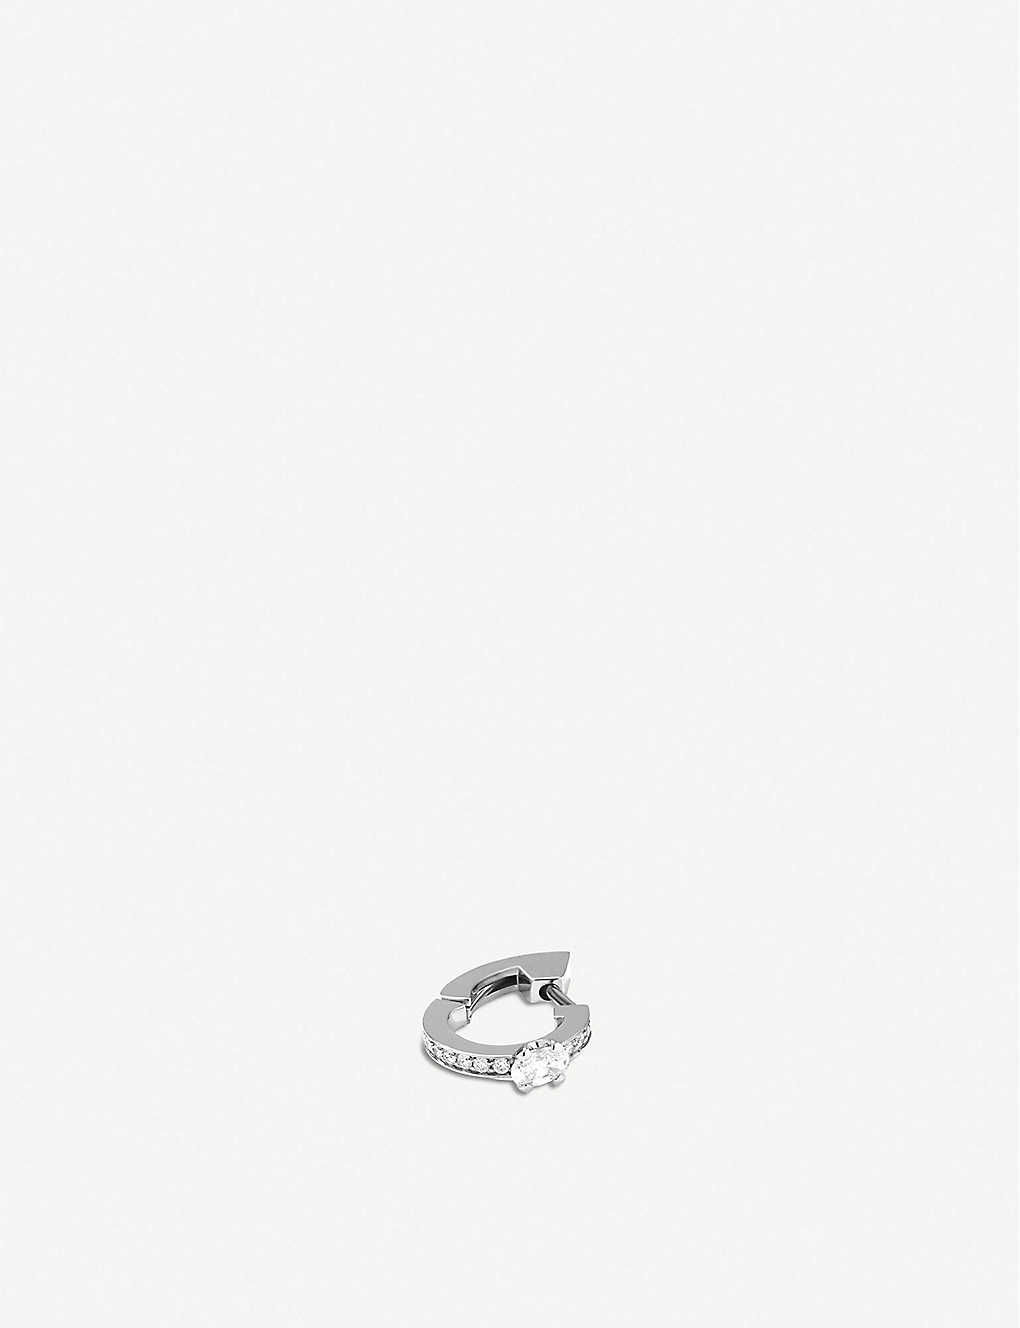 REPOSSI HARVEST 18CT WHITE-GOLD AND DIAMOND EARRING